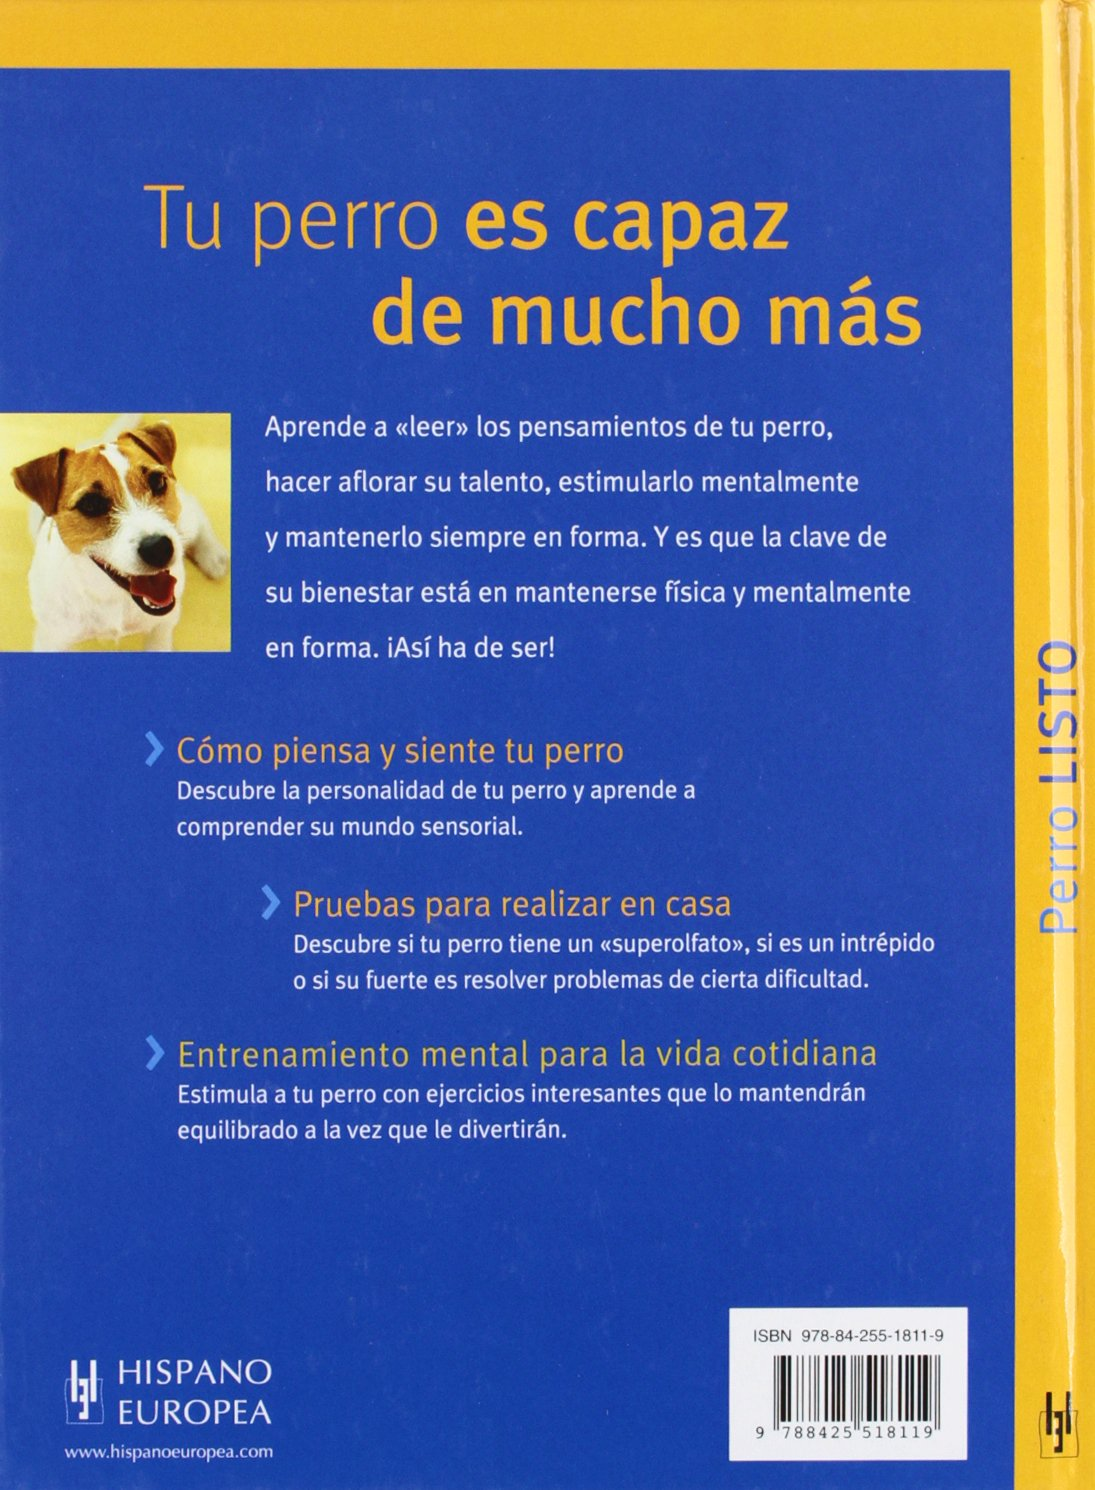 Perro listo (Spanish Edition): Immanuel Birmelin: 9788425518119: Amazon.com: Books